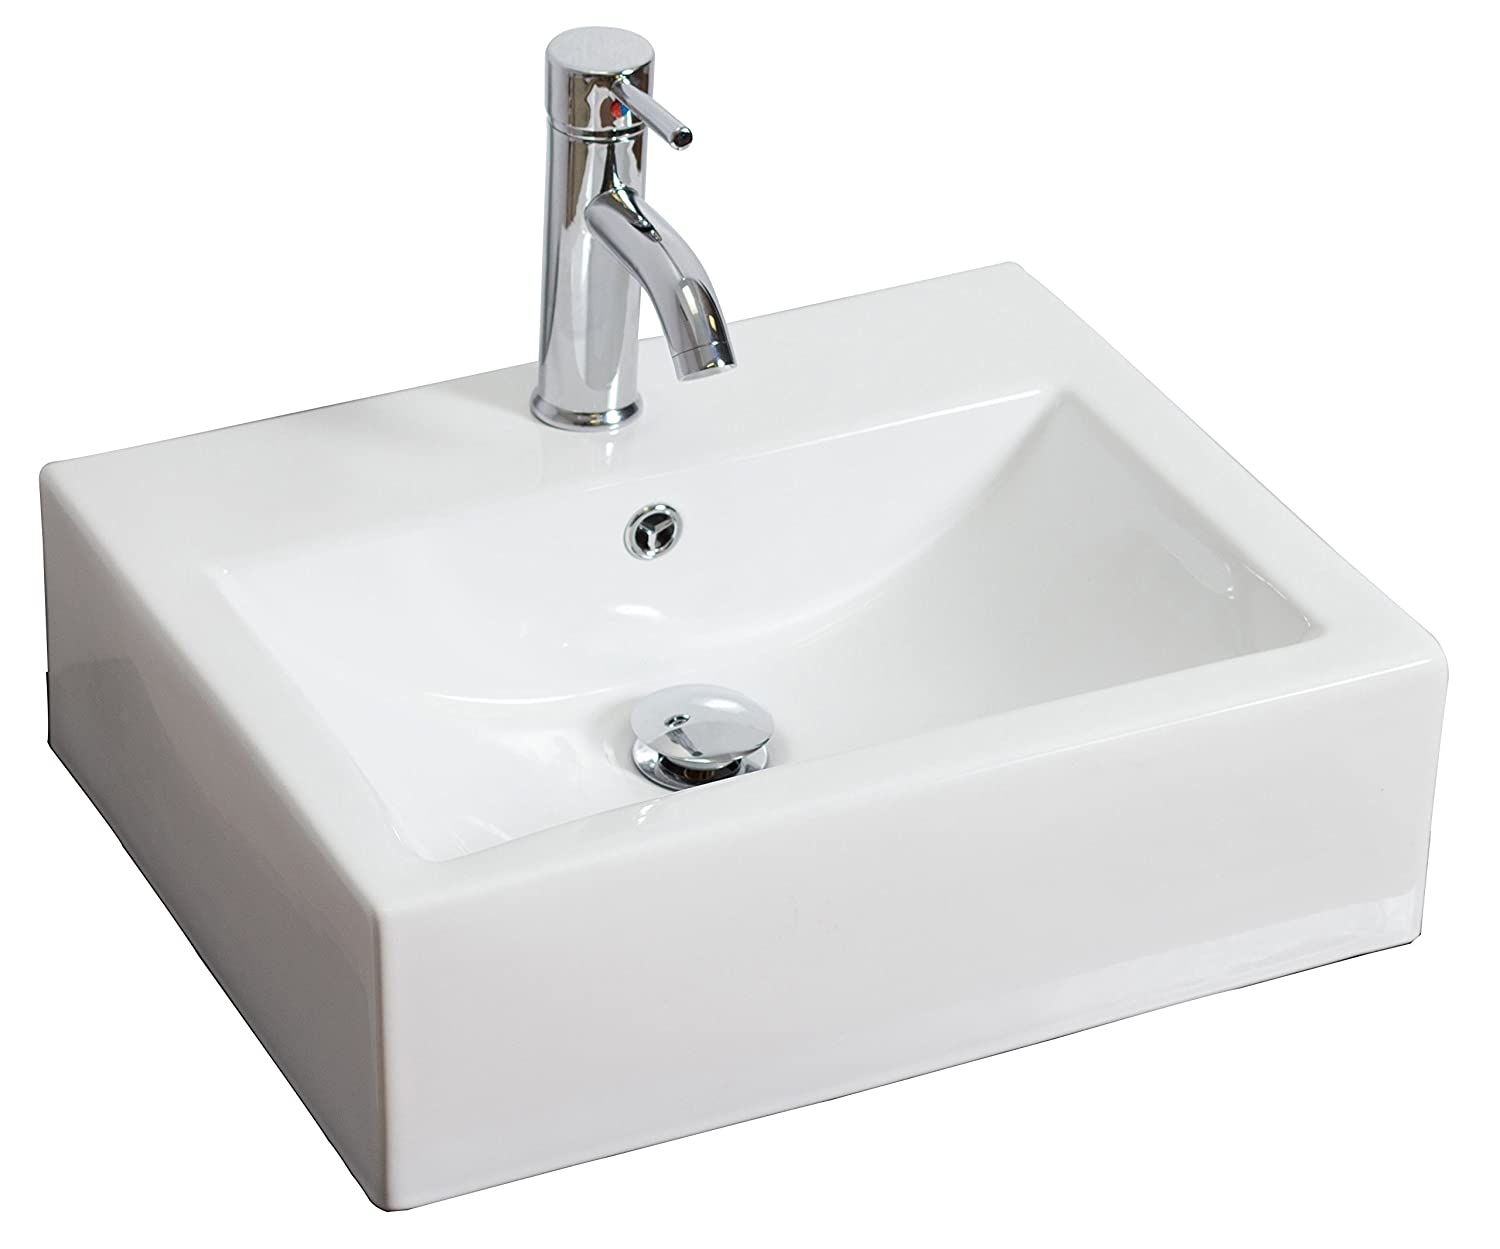 American Imaginations AI-15-685 Wall Mount Rectangle Vessel for Single Hole Faucet, 20.5-Inch x 16-Inch, White